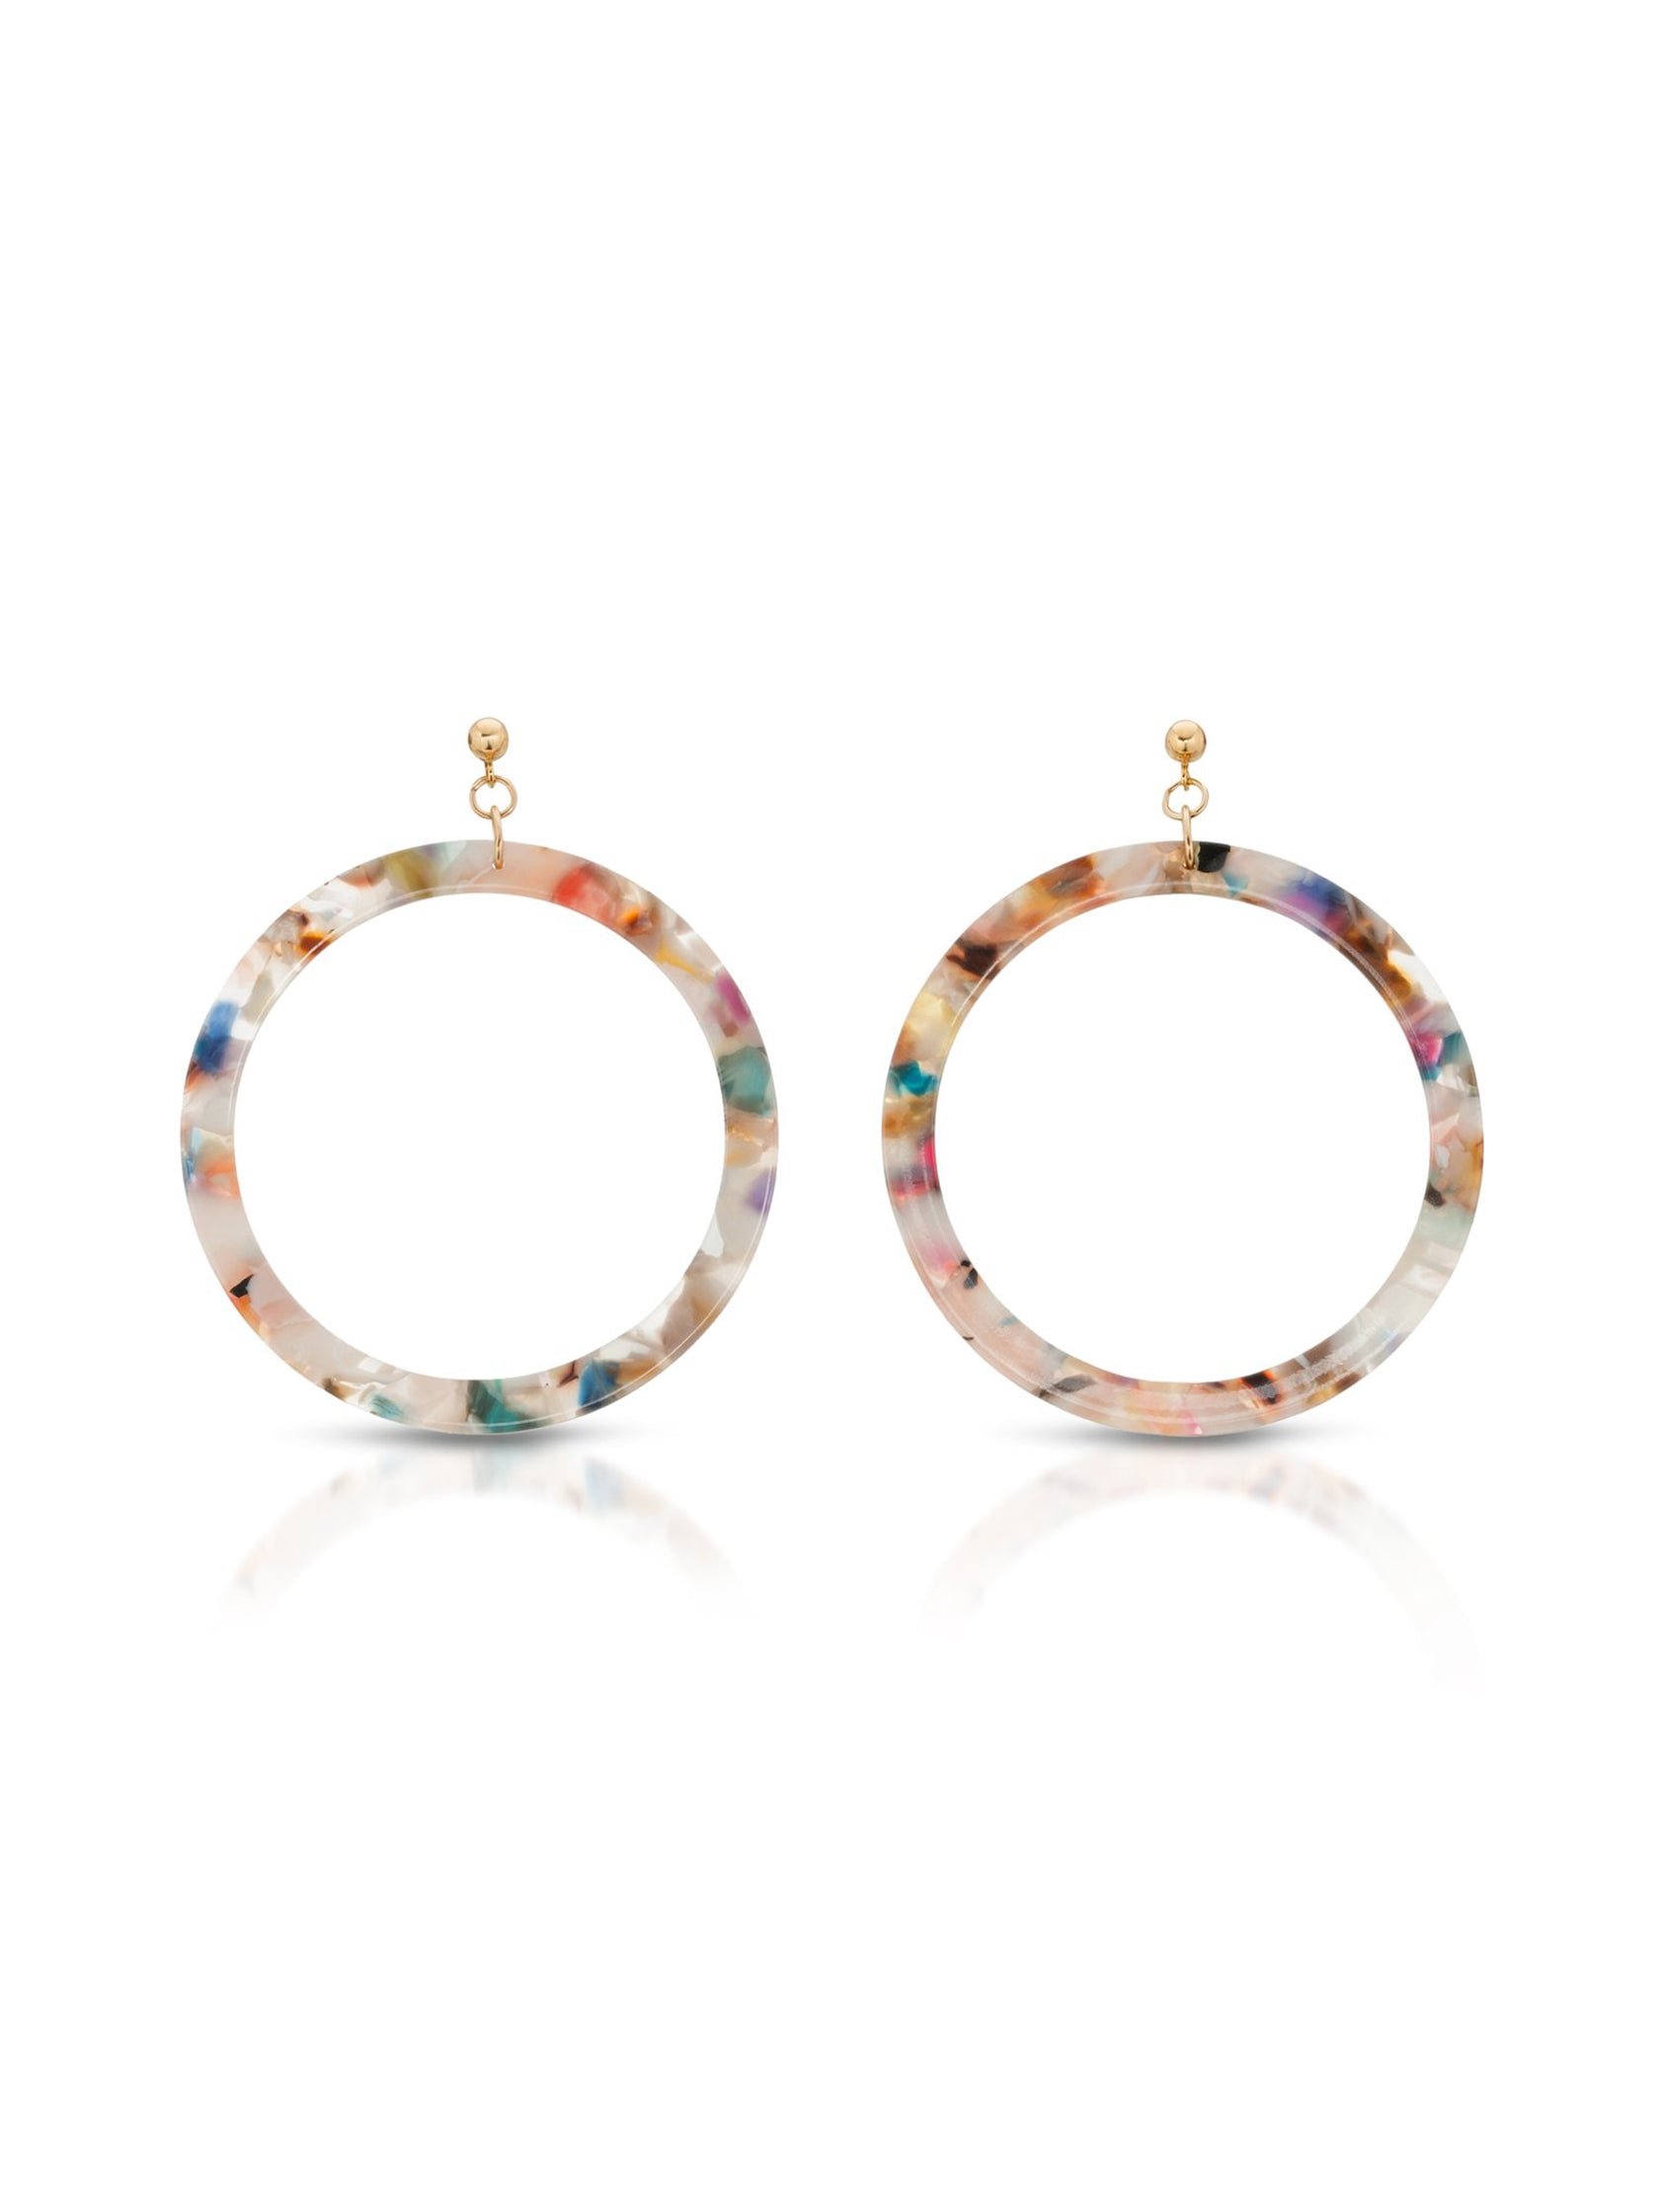 Women outfit in a earrings rental from JOY DRAVECKY called St. Tropez Multi-color Hoop Earring